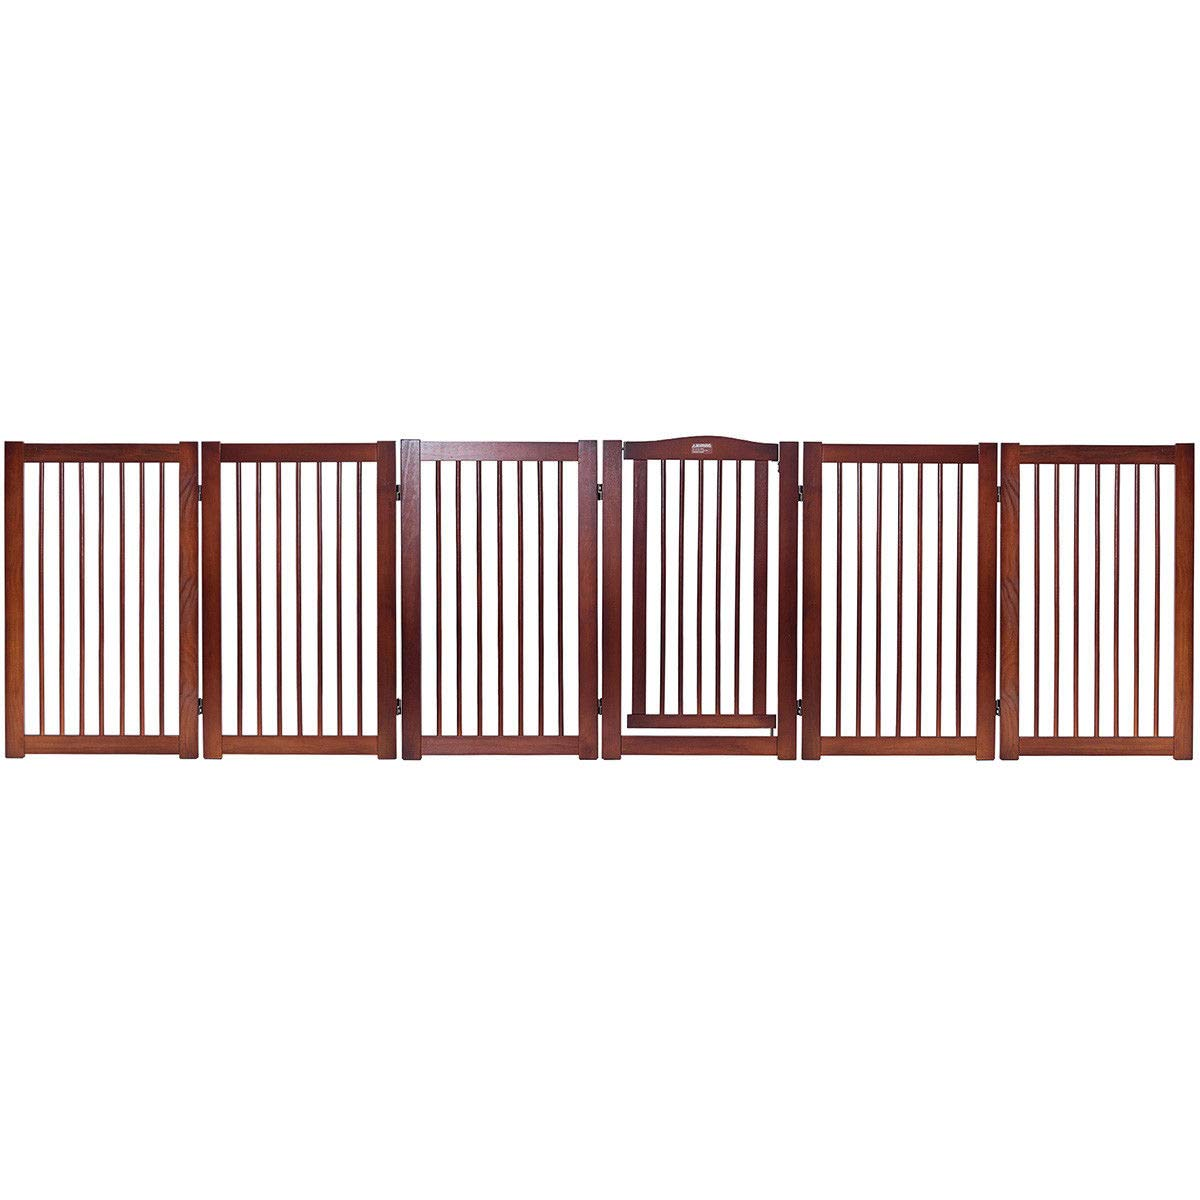 Giantex 36'' Configurable Folding Free Standing Panel Wood Pet Dog Safety Fence w/Gate (133'' W) by Giantex (Image #5)